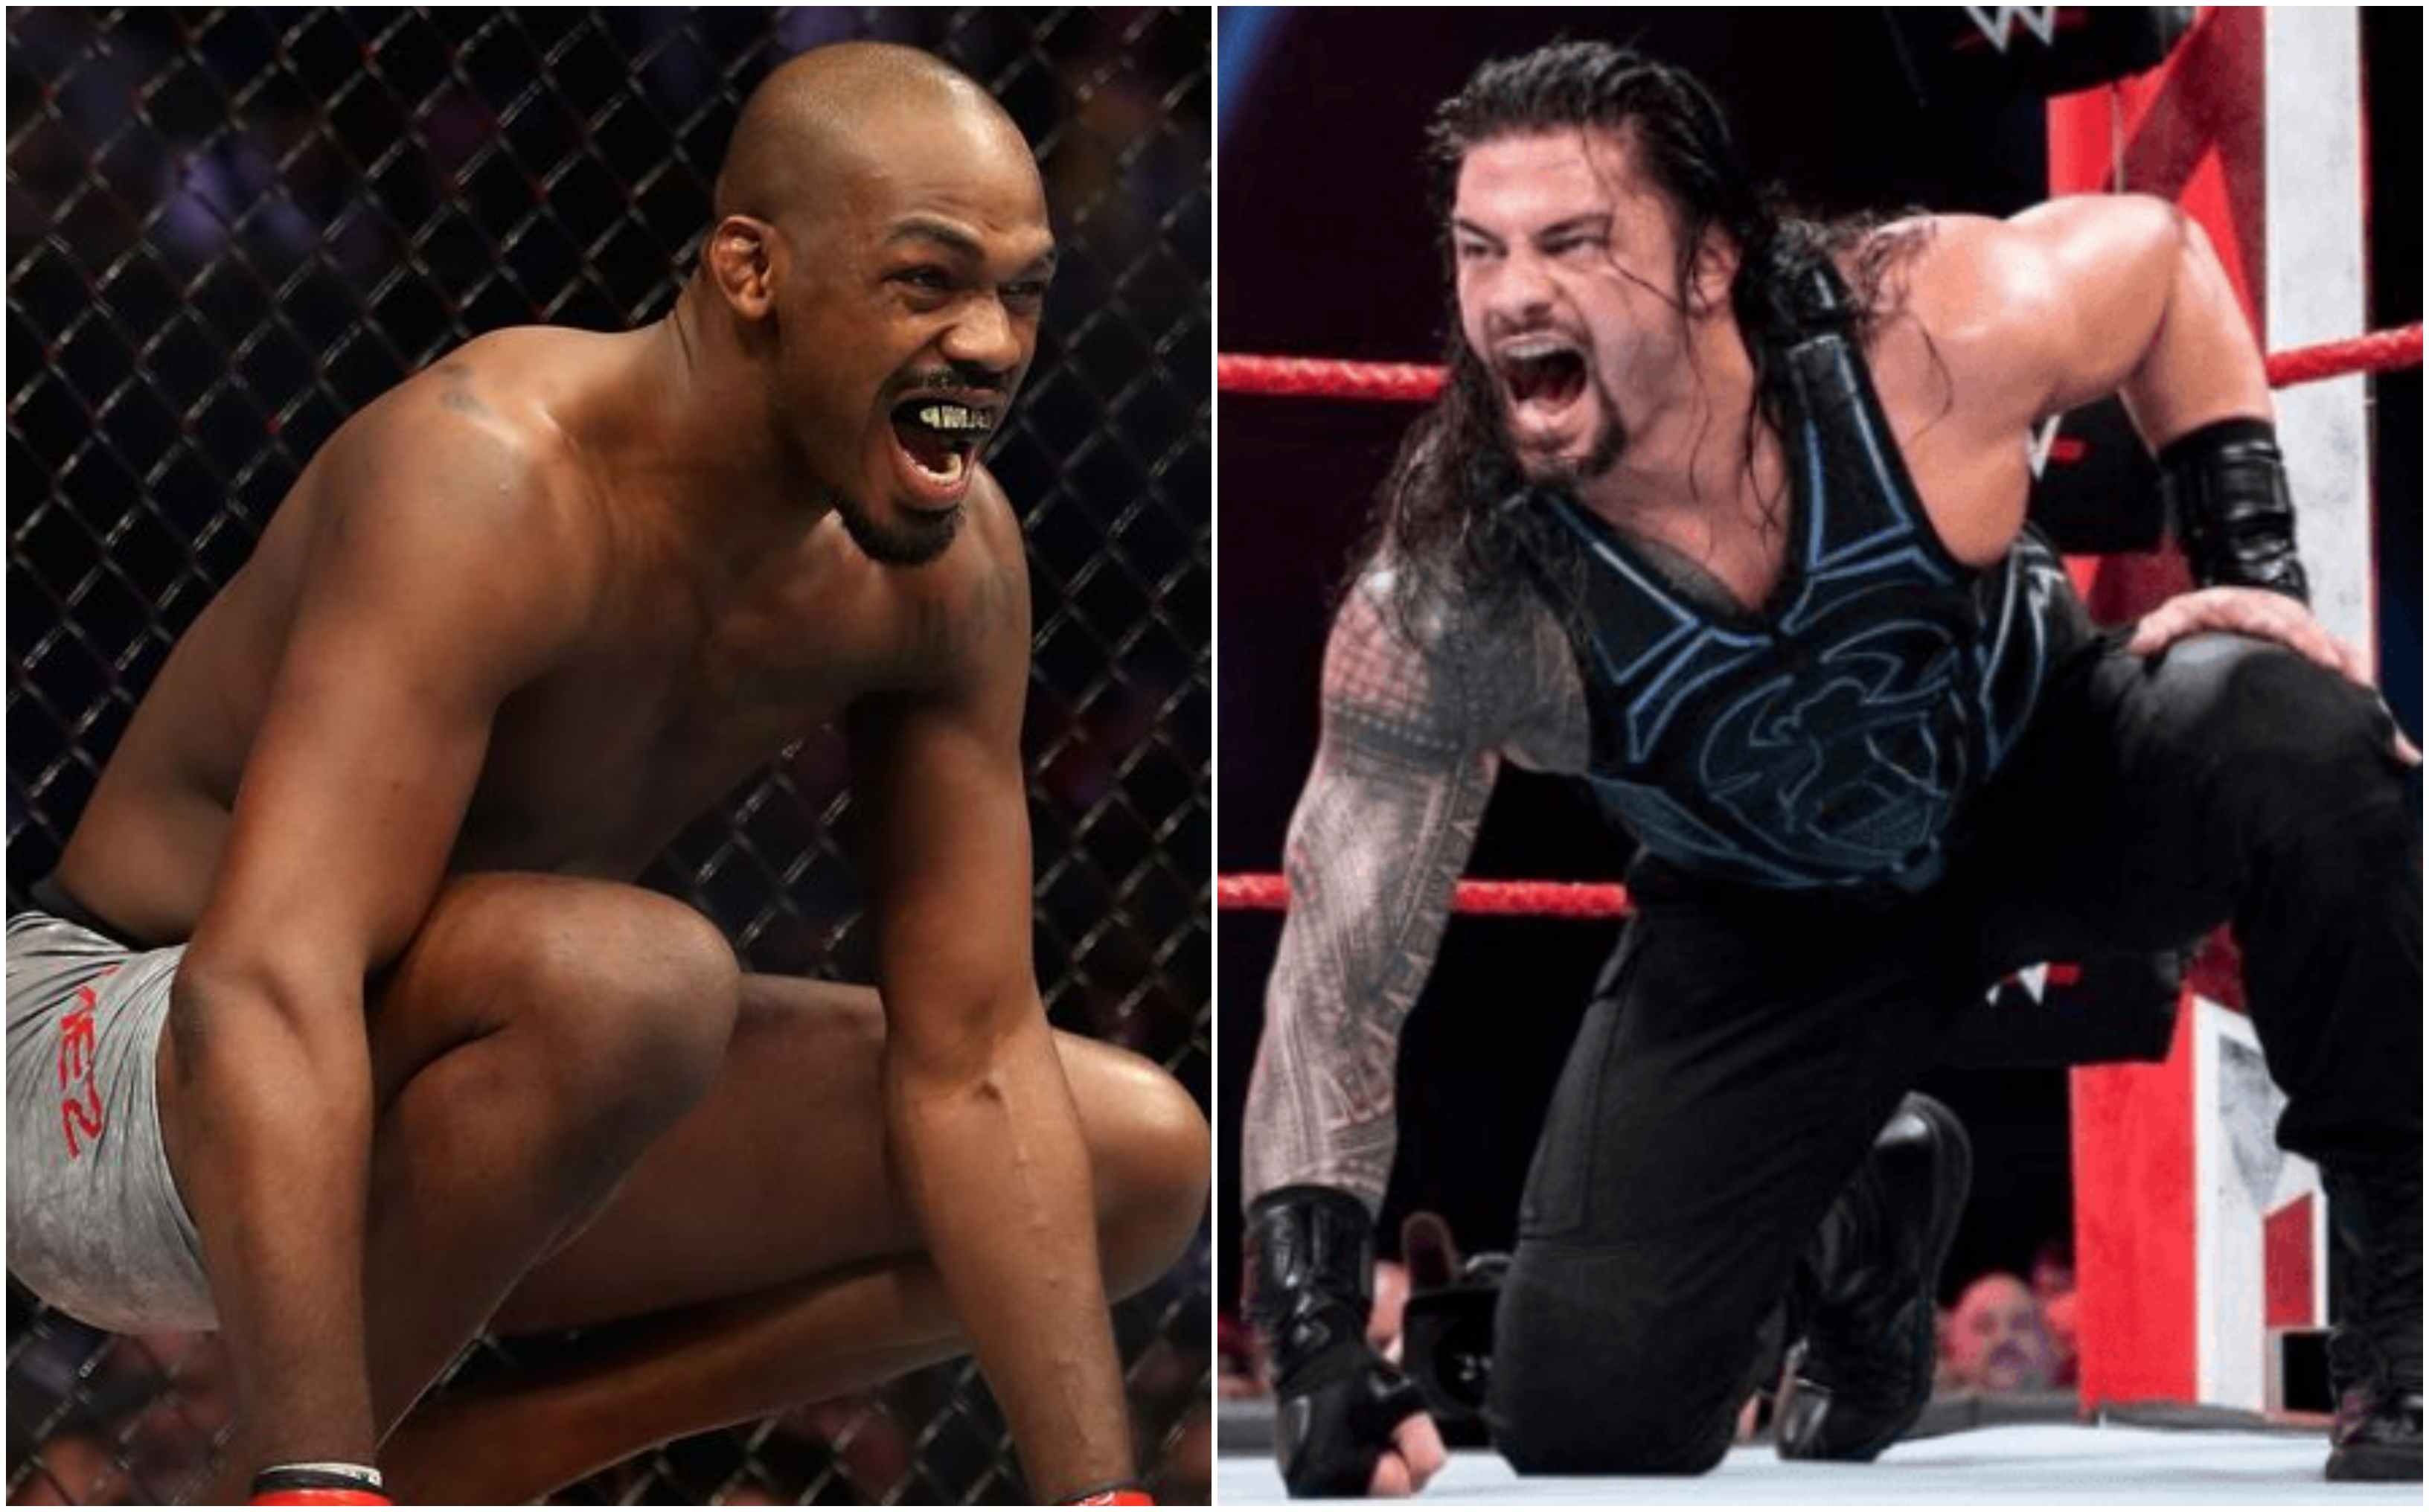 UFC News: WWE star Roman Reigns says he would 'whoop' Jon Jones in the ring - Roman